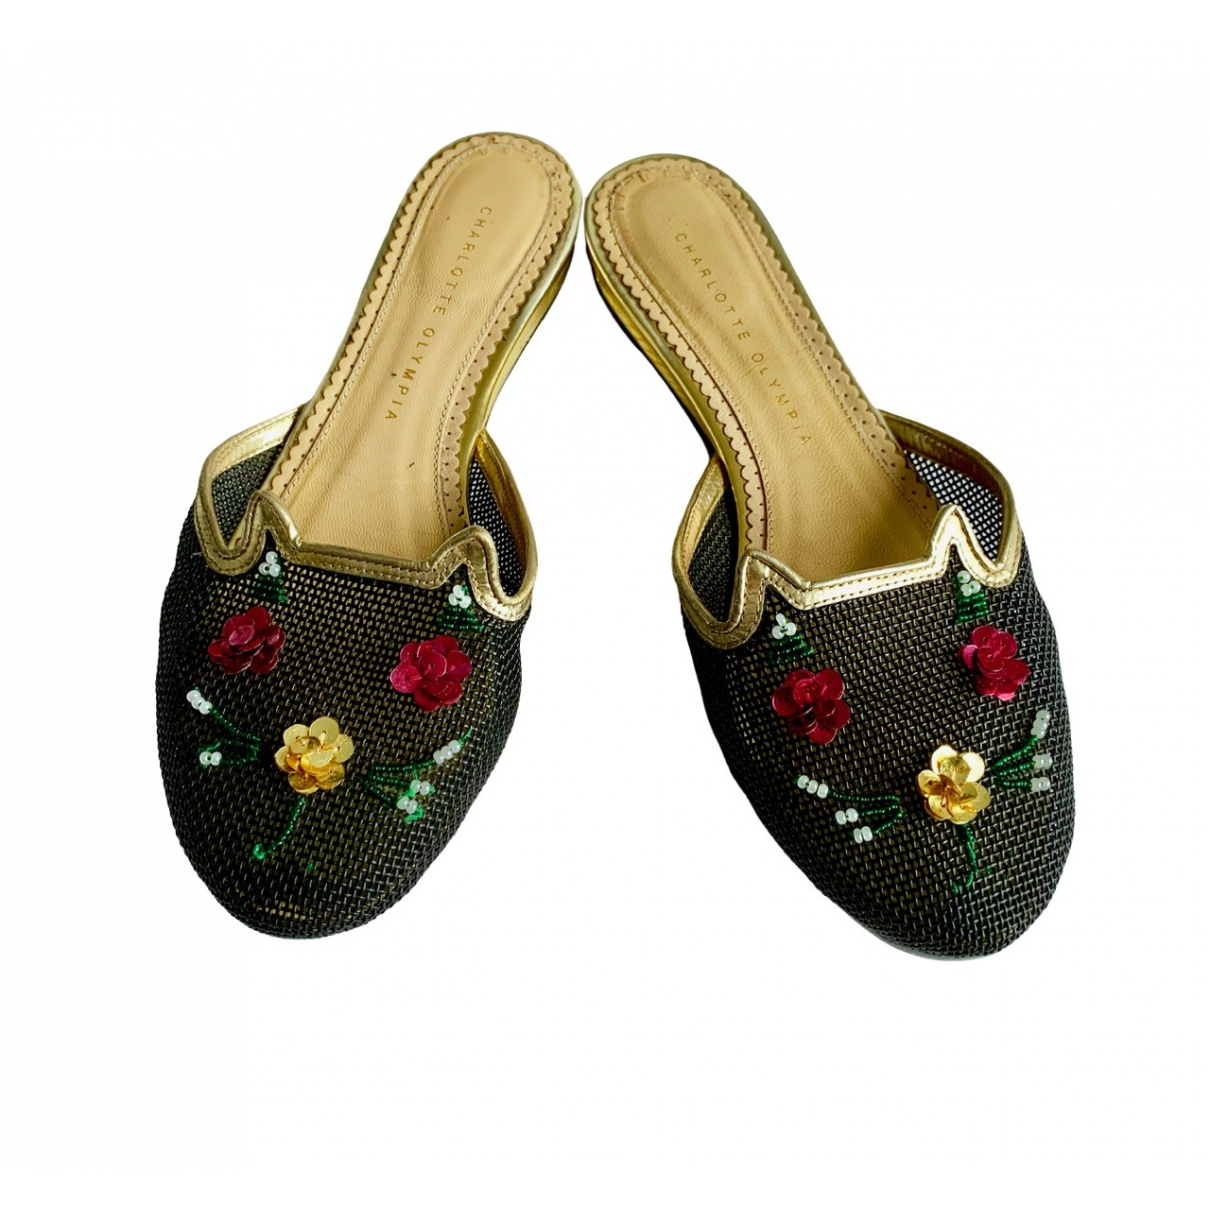 Charlotte Olympia Kitty Black Leather Sandals for Women 38.5 IT